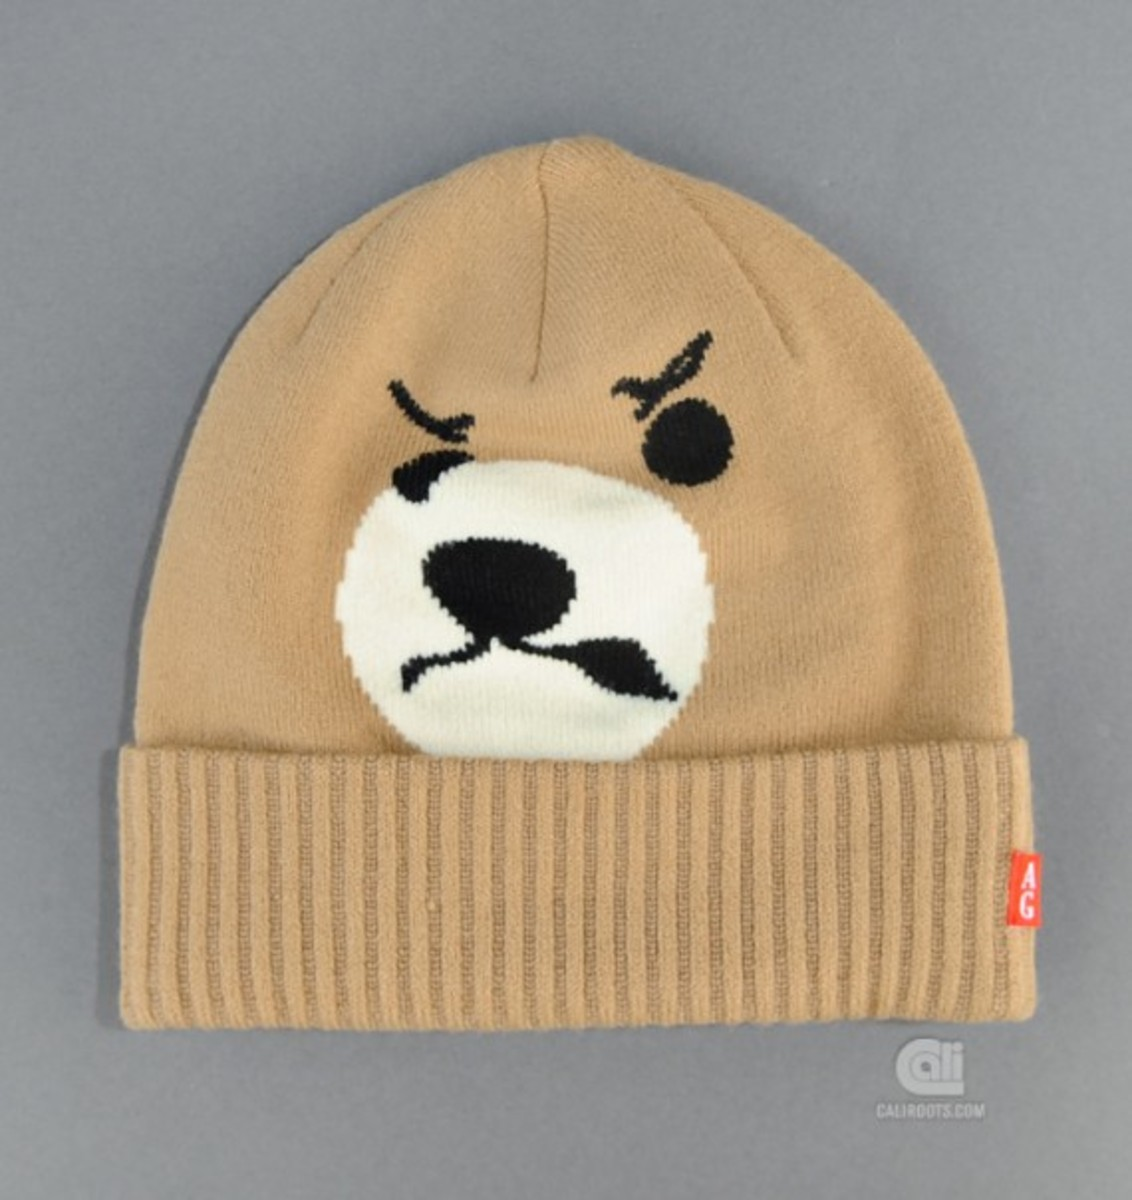 acapulco-gold-angry-lo-bear-beanie-01